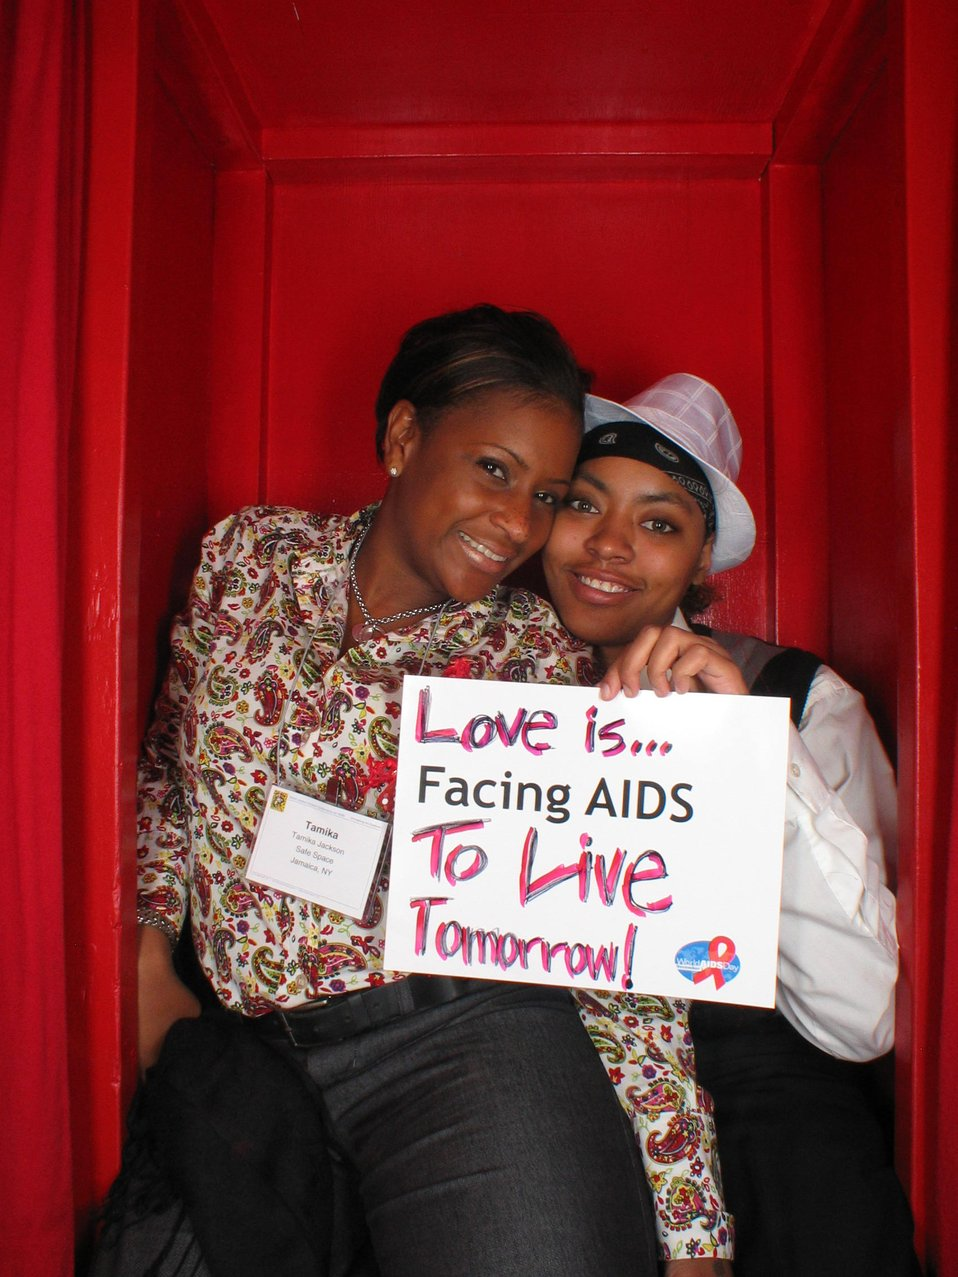 Love is Facing AIDS to live tomorrow!